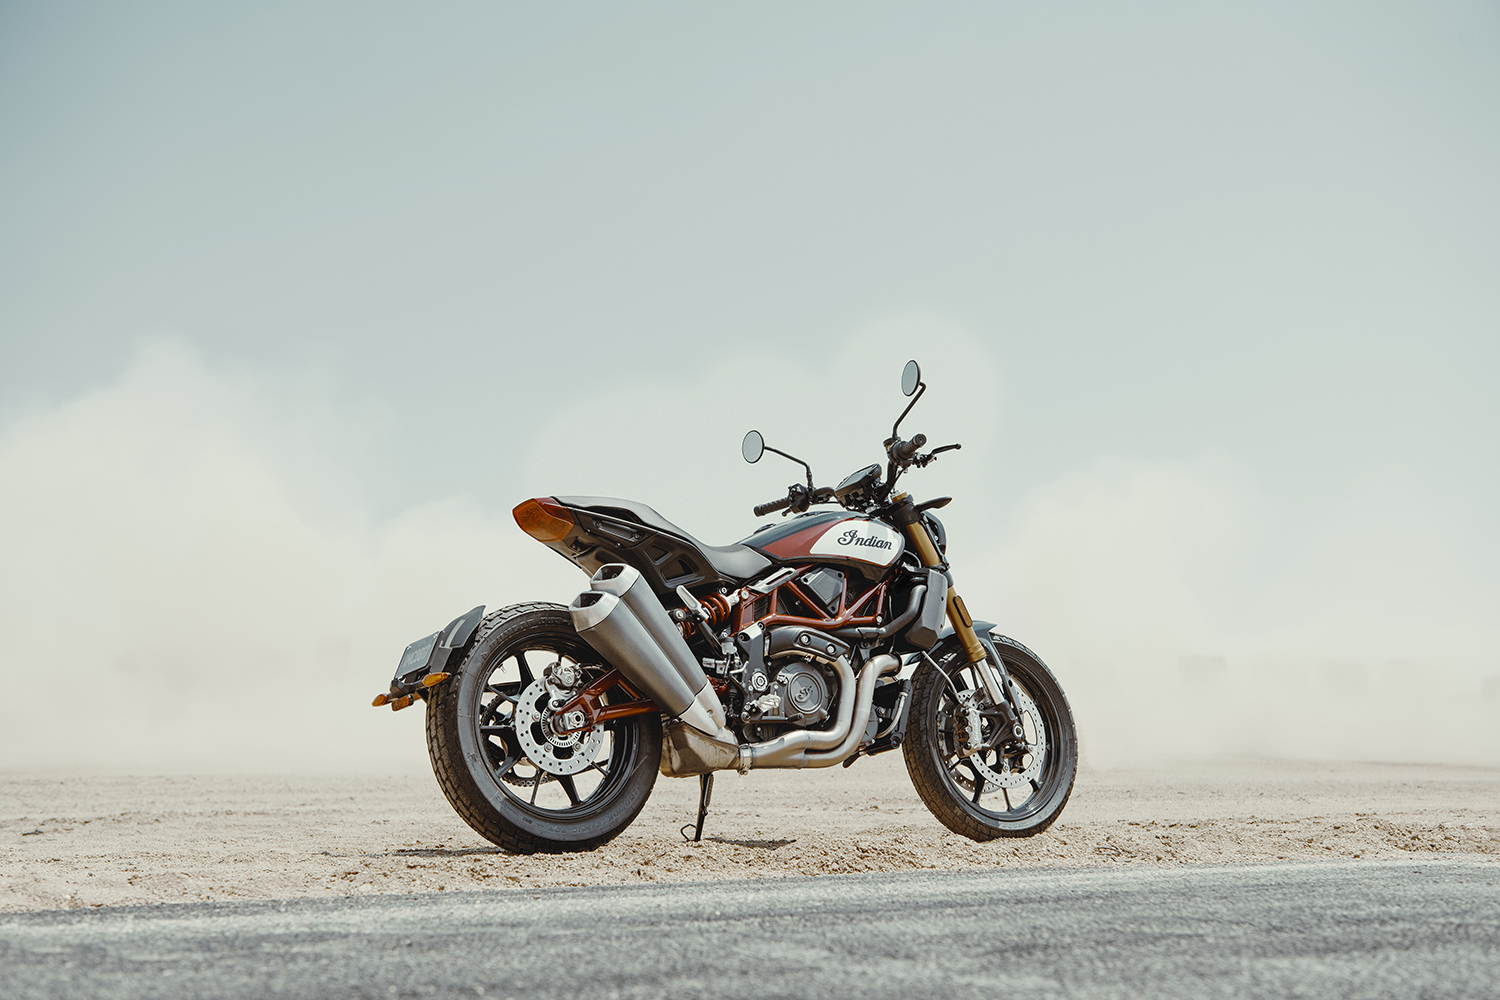 2019 Indian FTR 1200 and FTR 1200 S: Indian's Flat Track